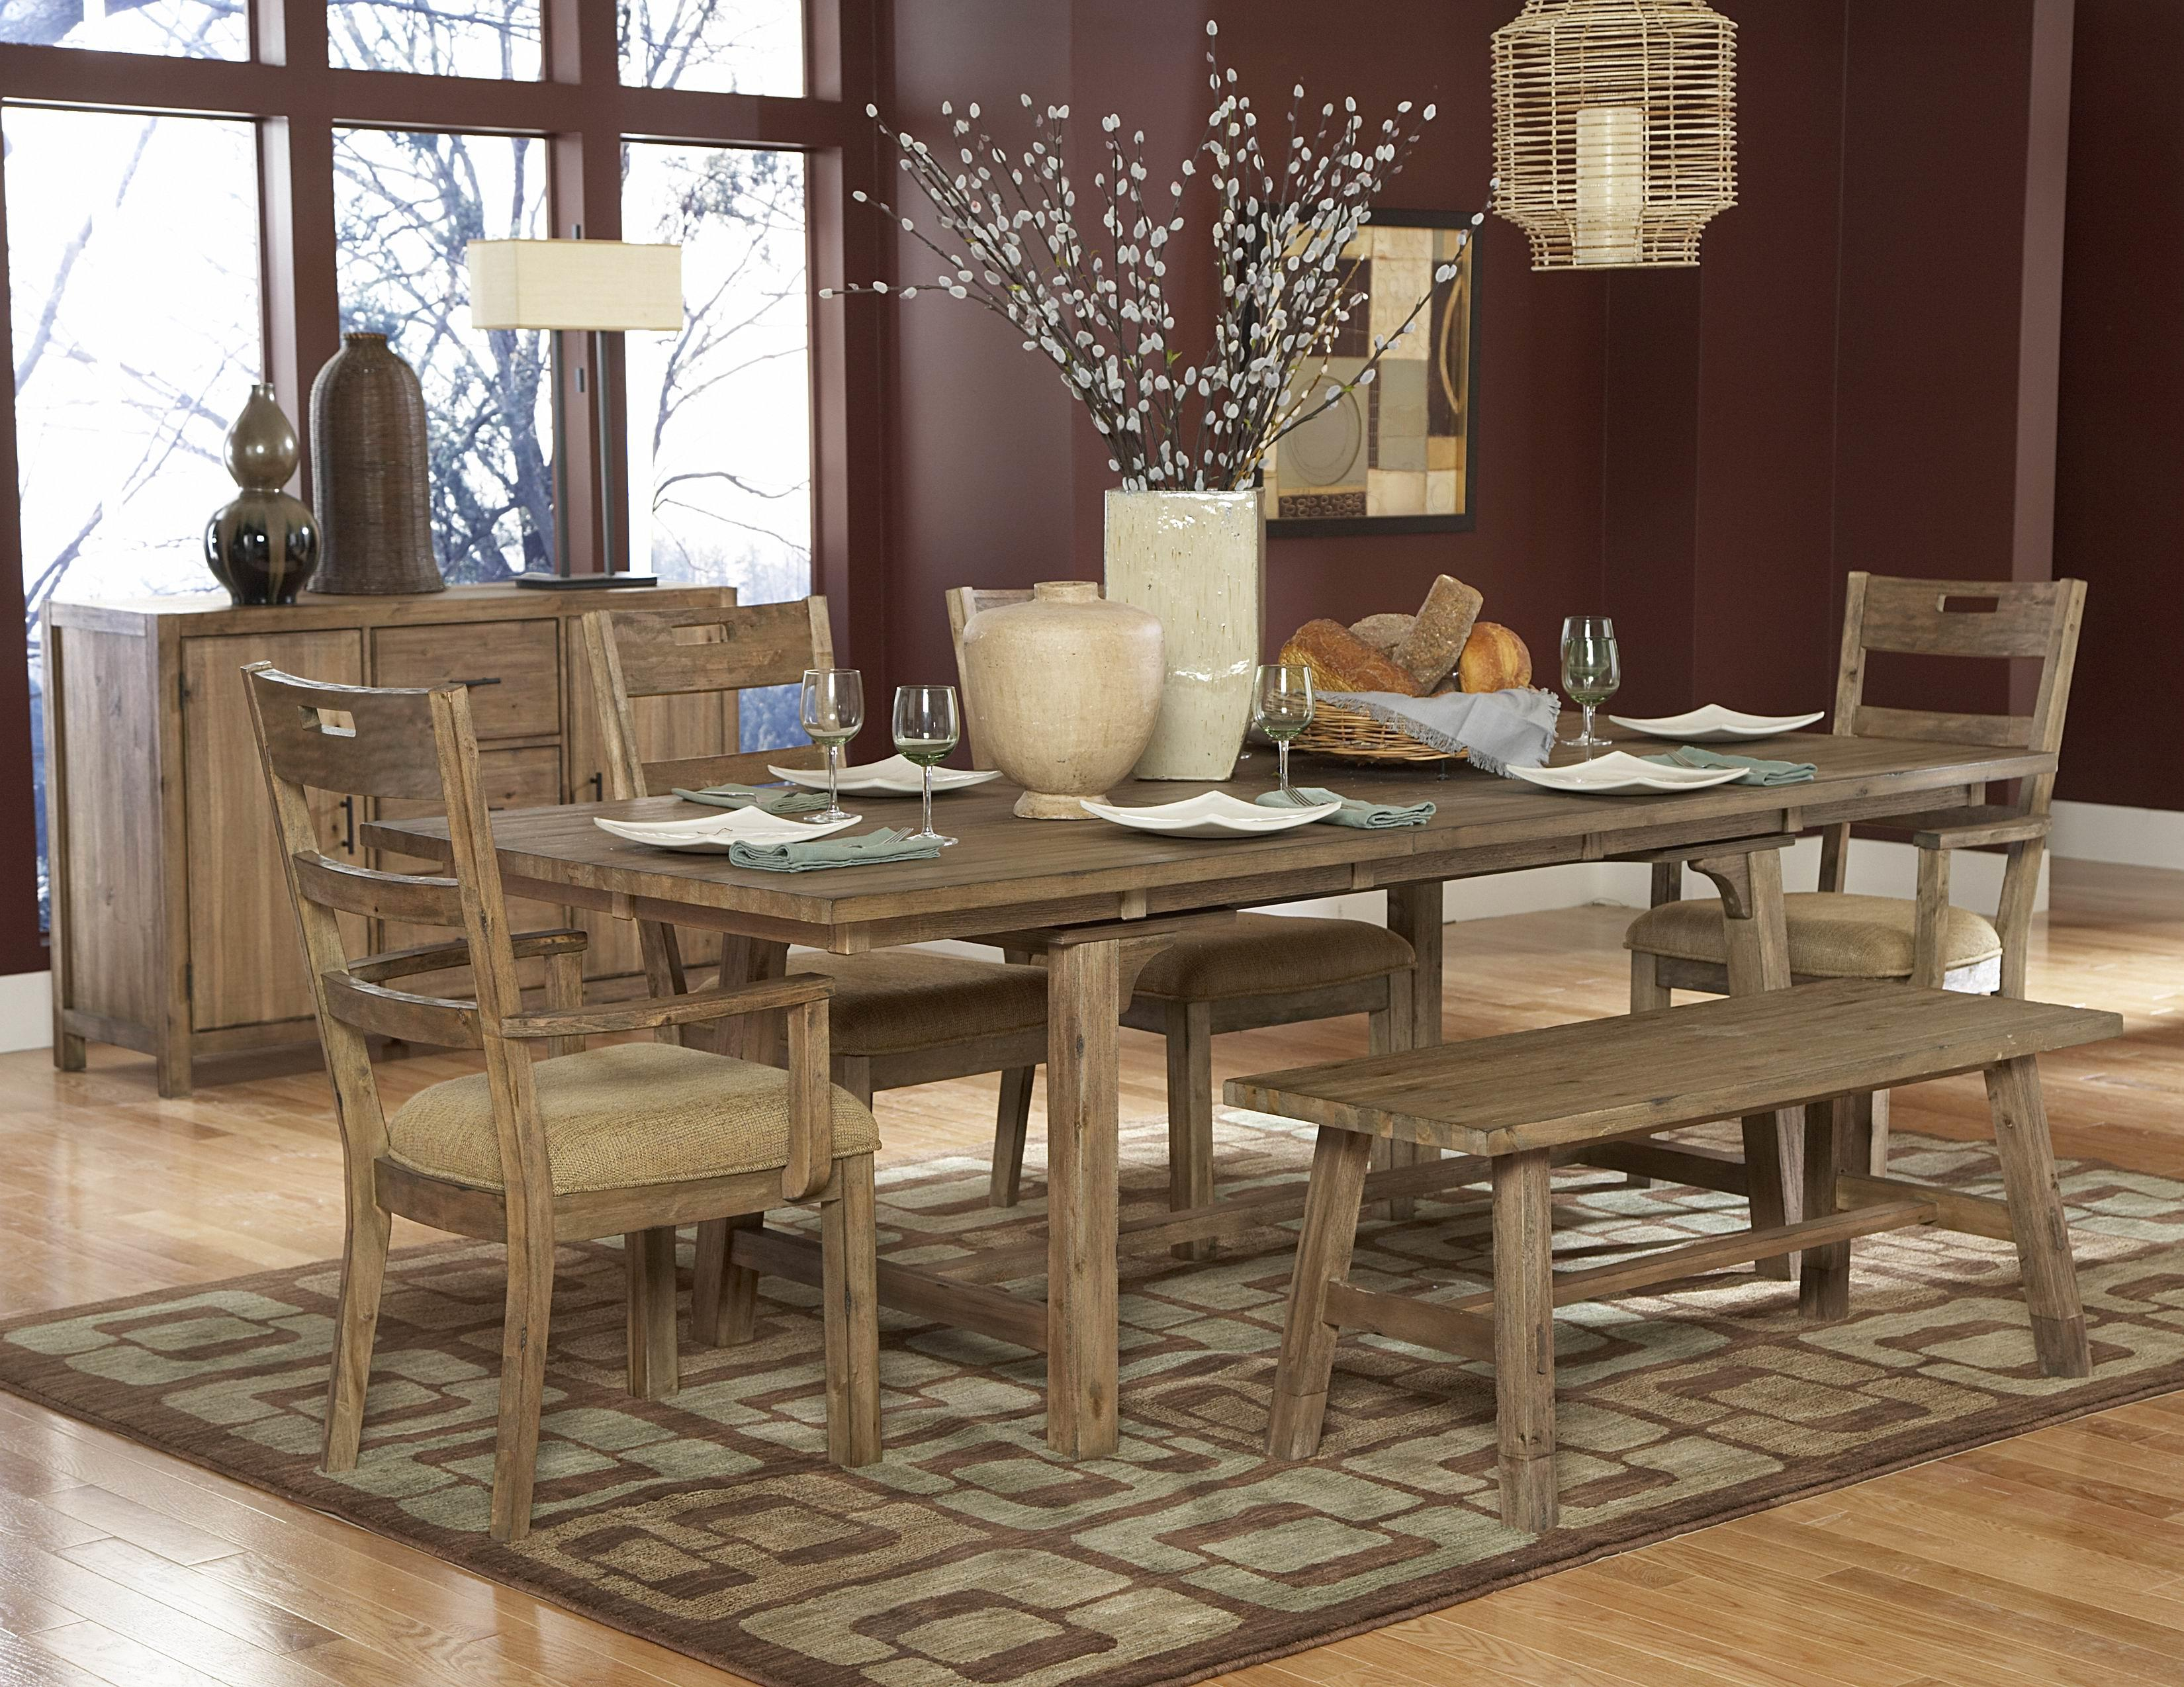 Rustic Dining Room Sets To Always Feel In Country Farmhouse Home Decor With Collection Of Interior Design